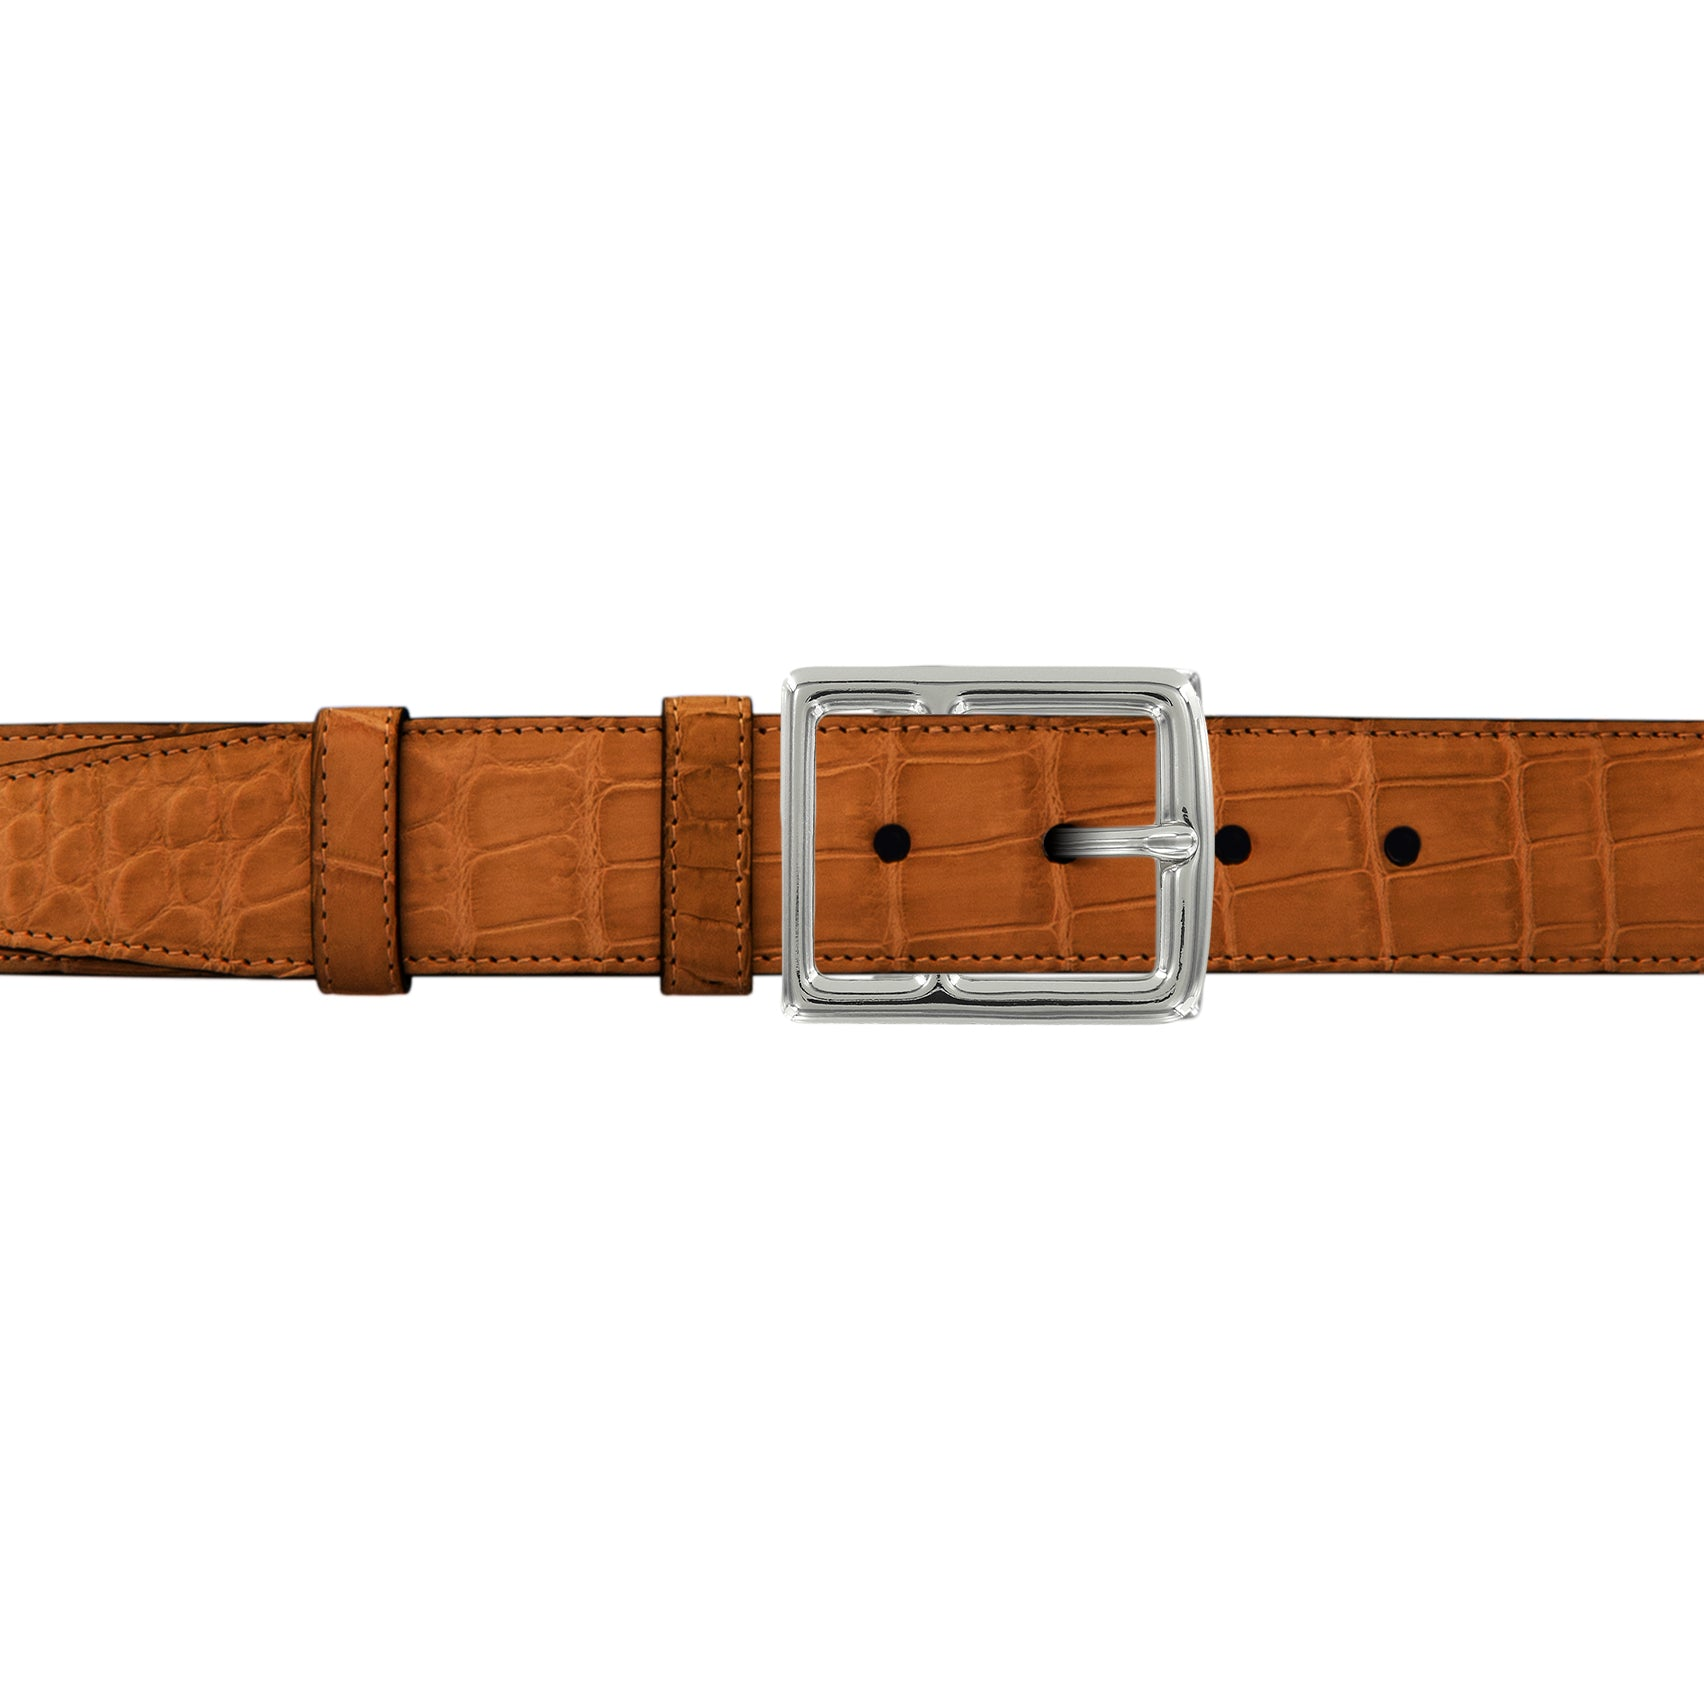 "1 1/2"" Dark Sand Classic Belt with Crawford Casual Buckle in Polished Nickel"